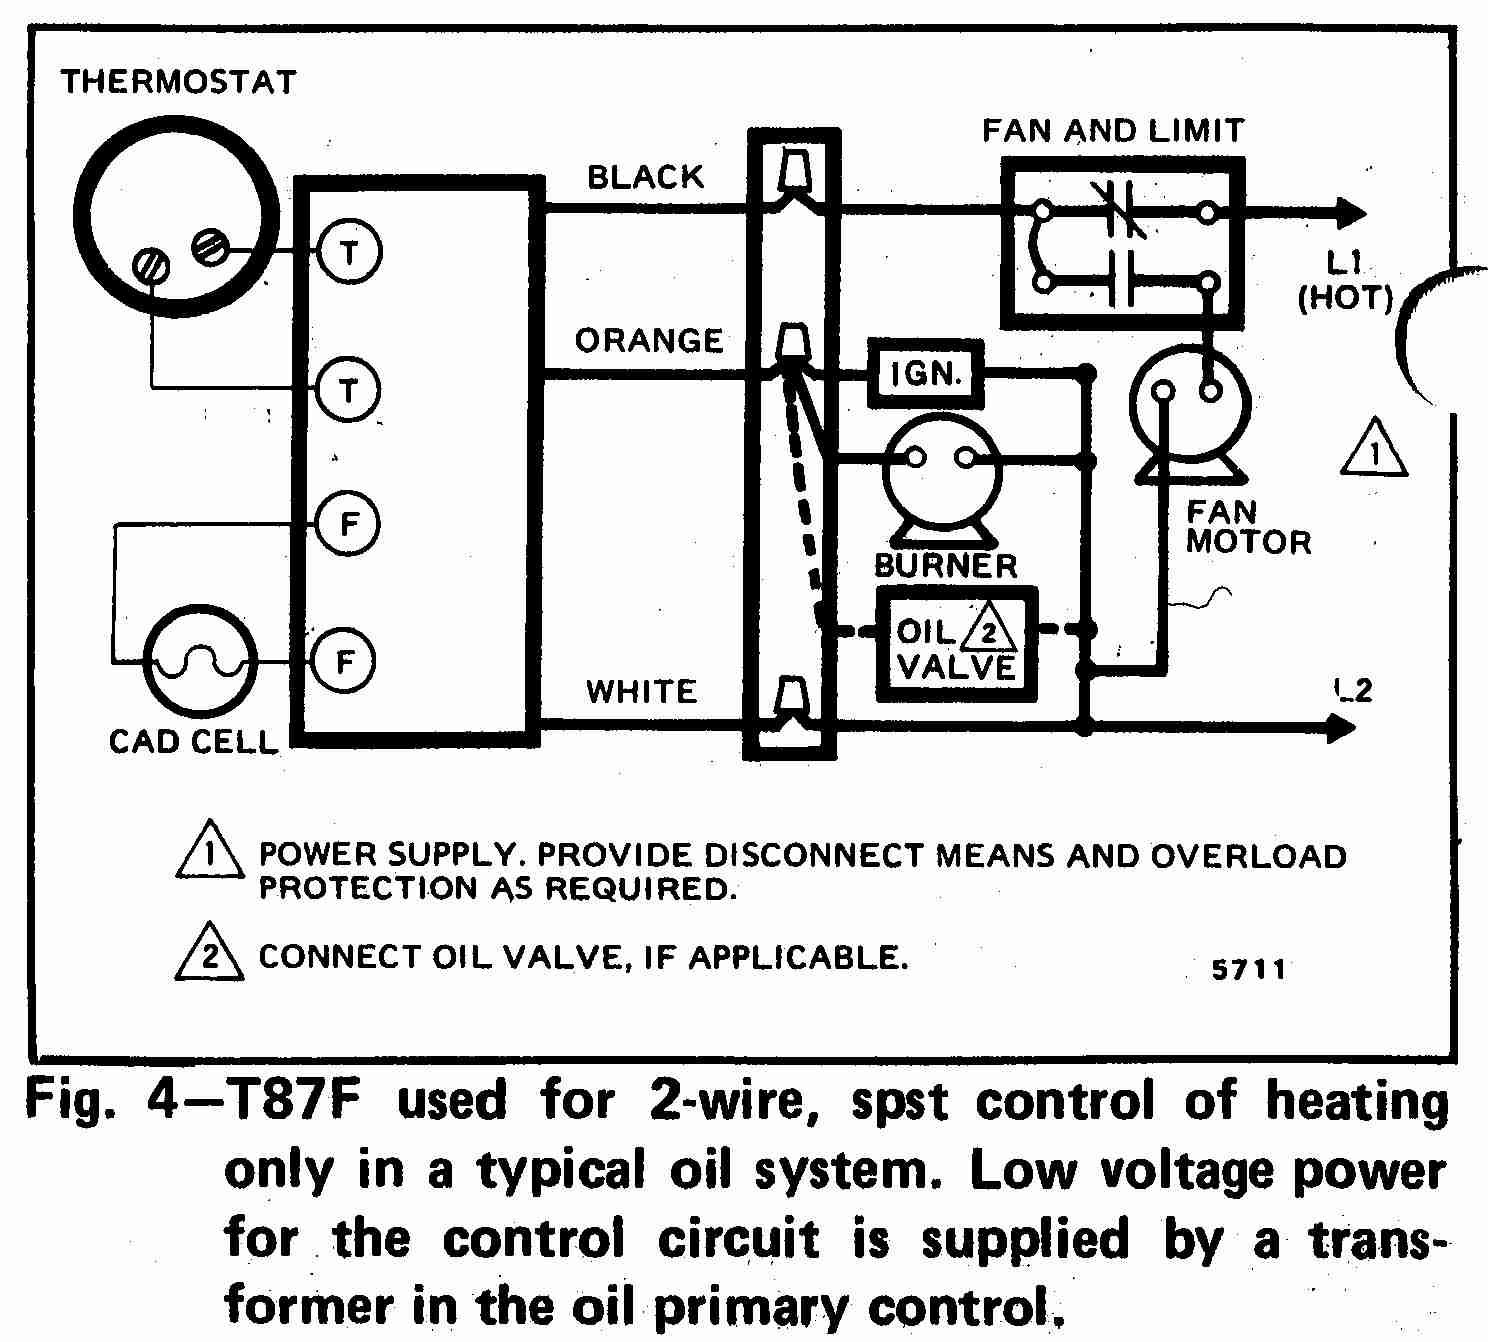 hvac wire diagram hvac image wiring diagram room thermostat wiring diagrams for hvac systems on hvac wire diagram